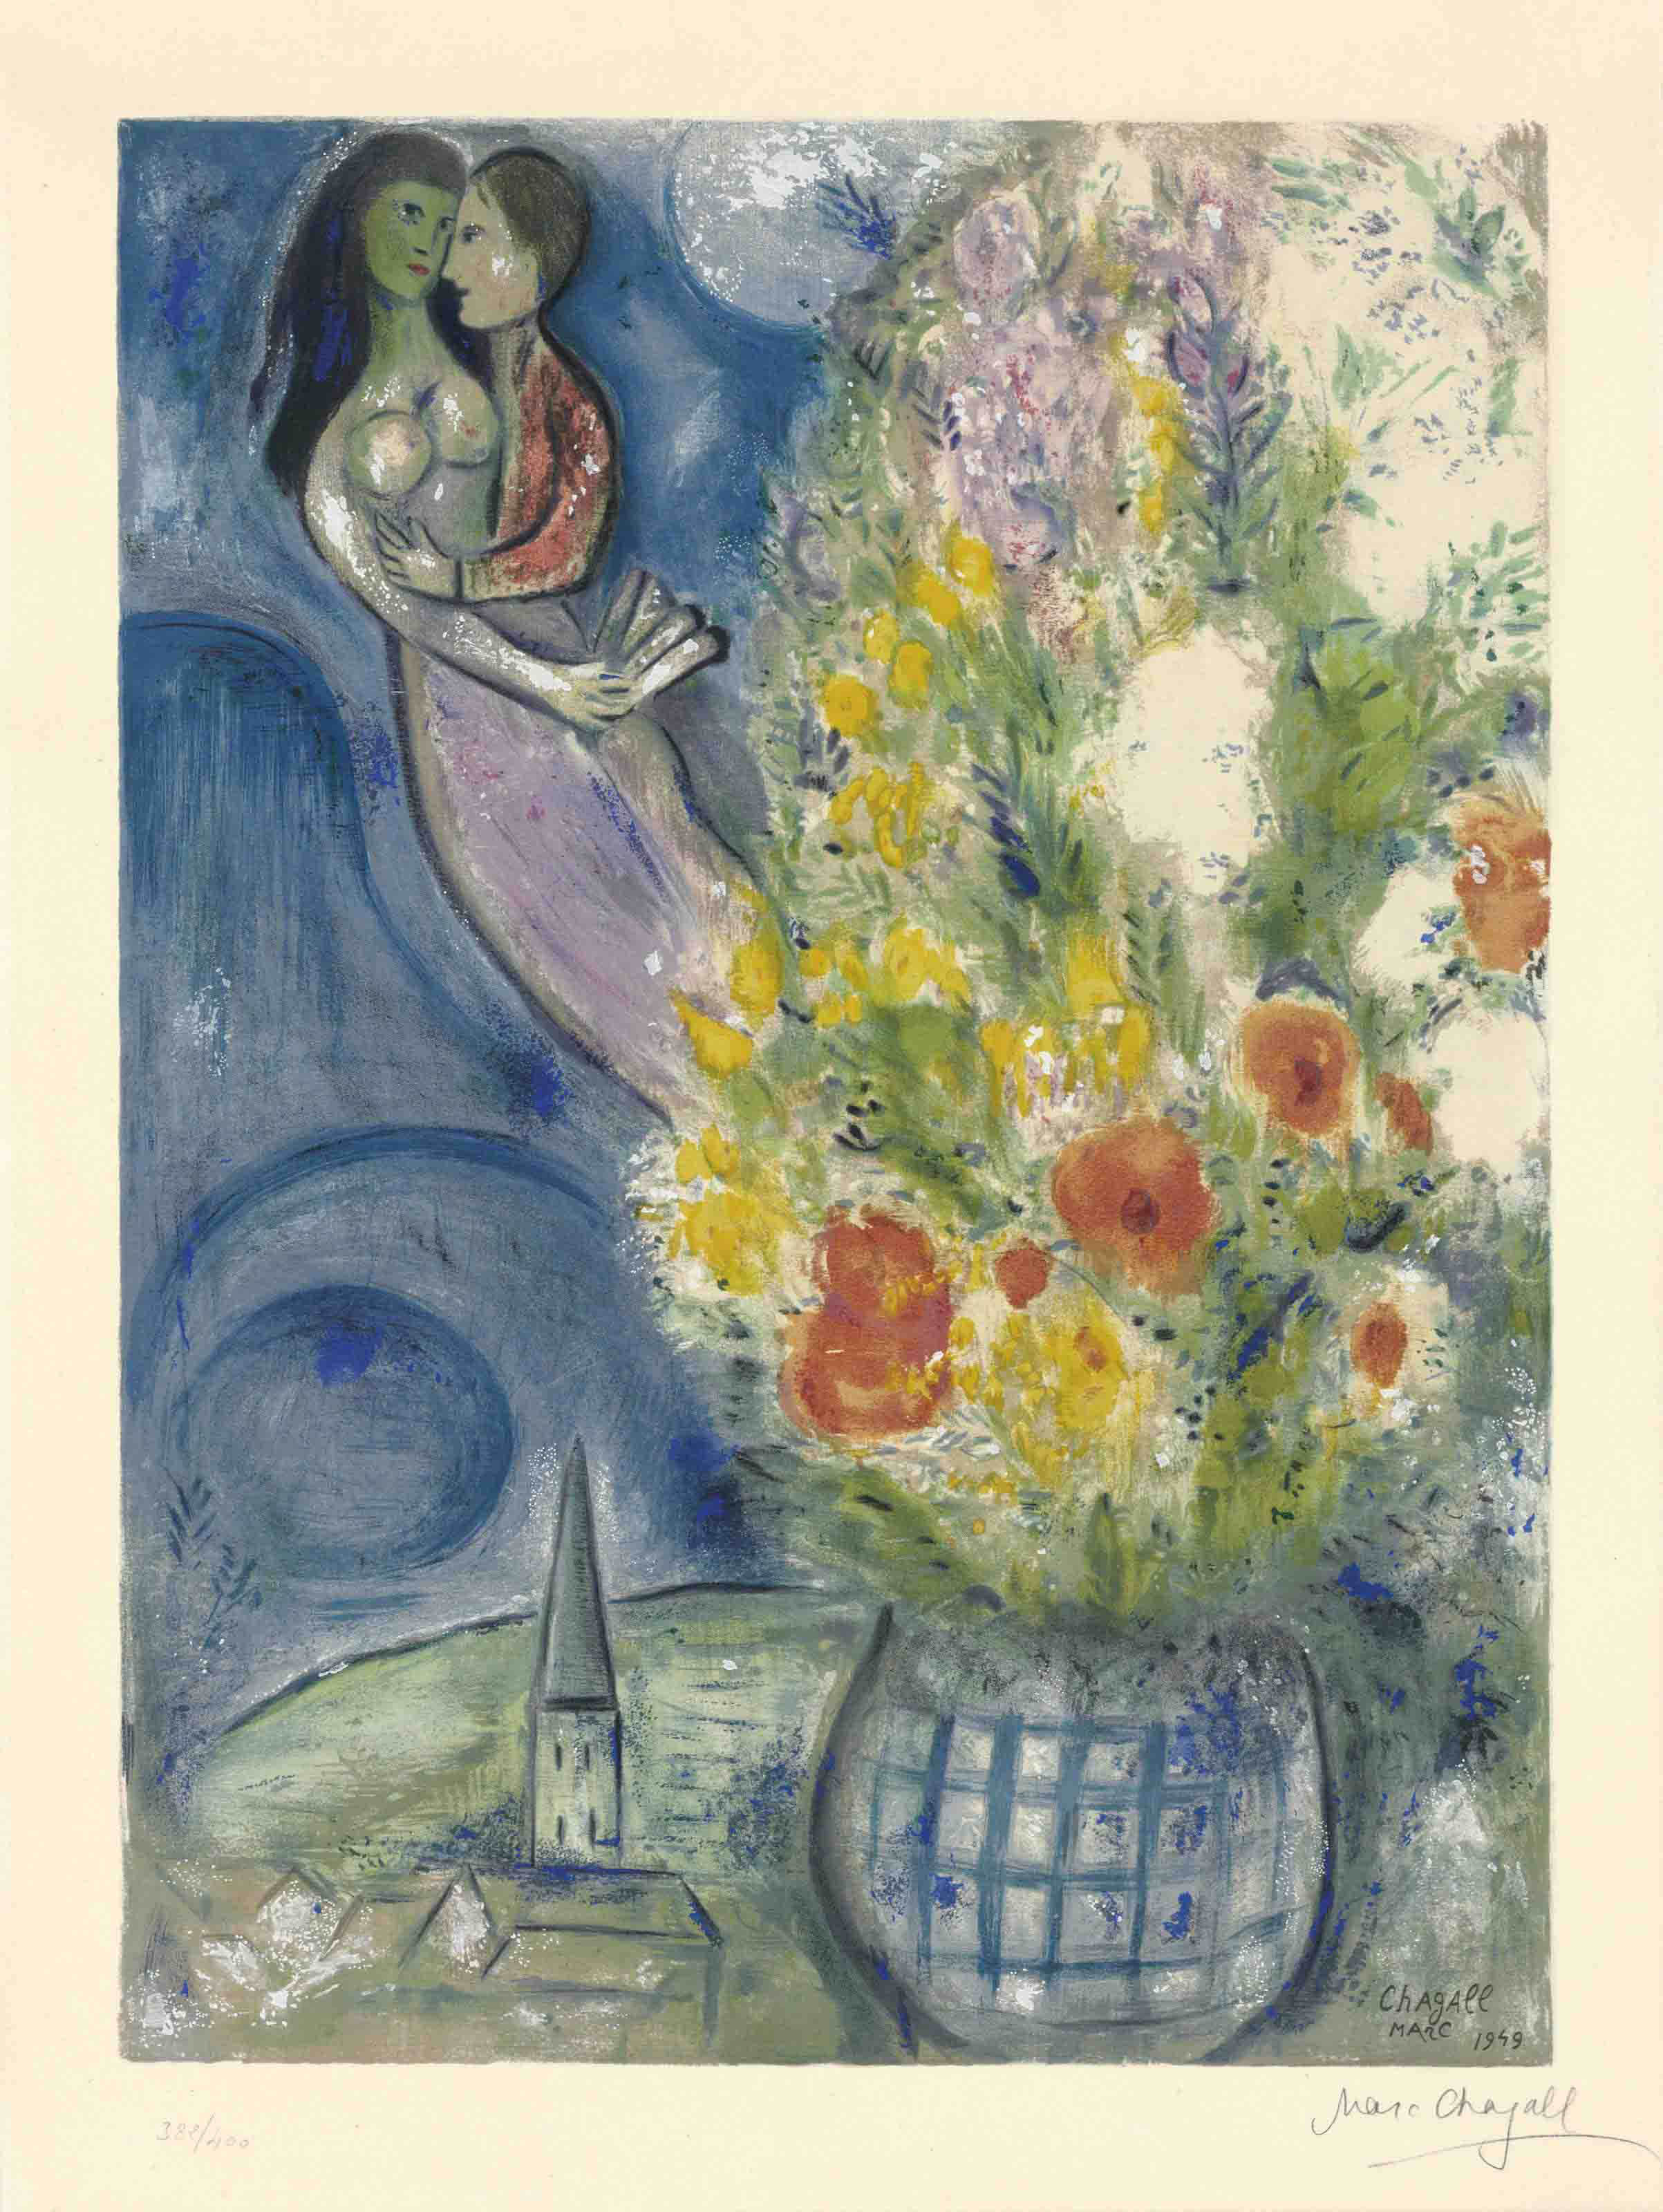 AFTER MARC CHAGALL BY CHARLES SORLIER (1921-1990)